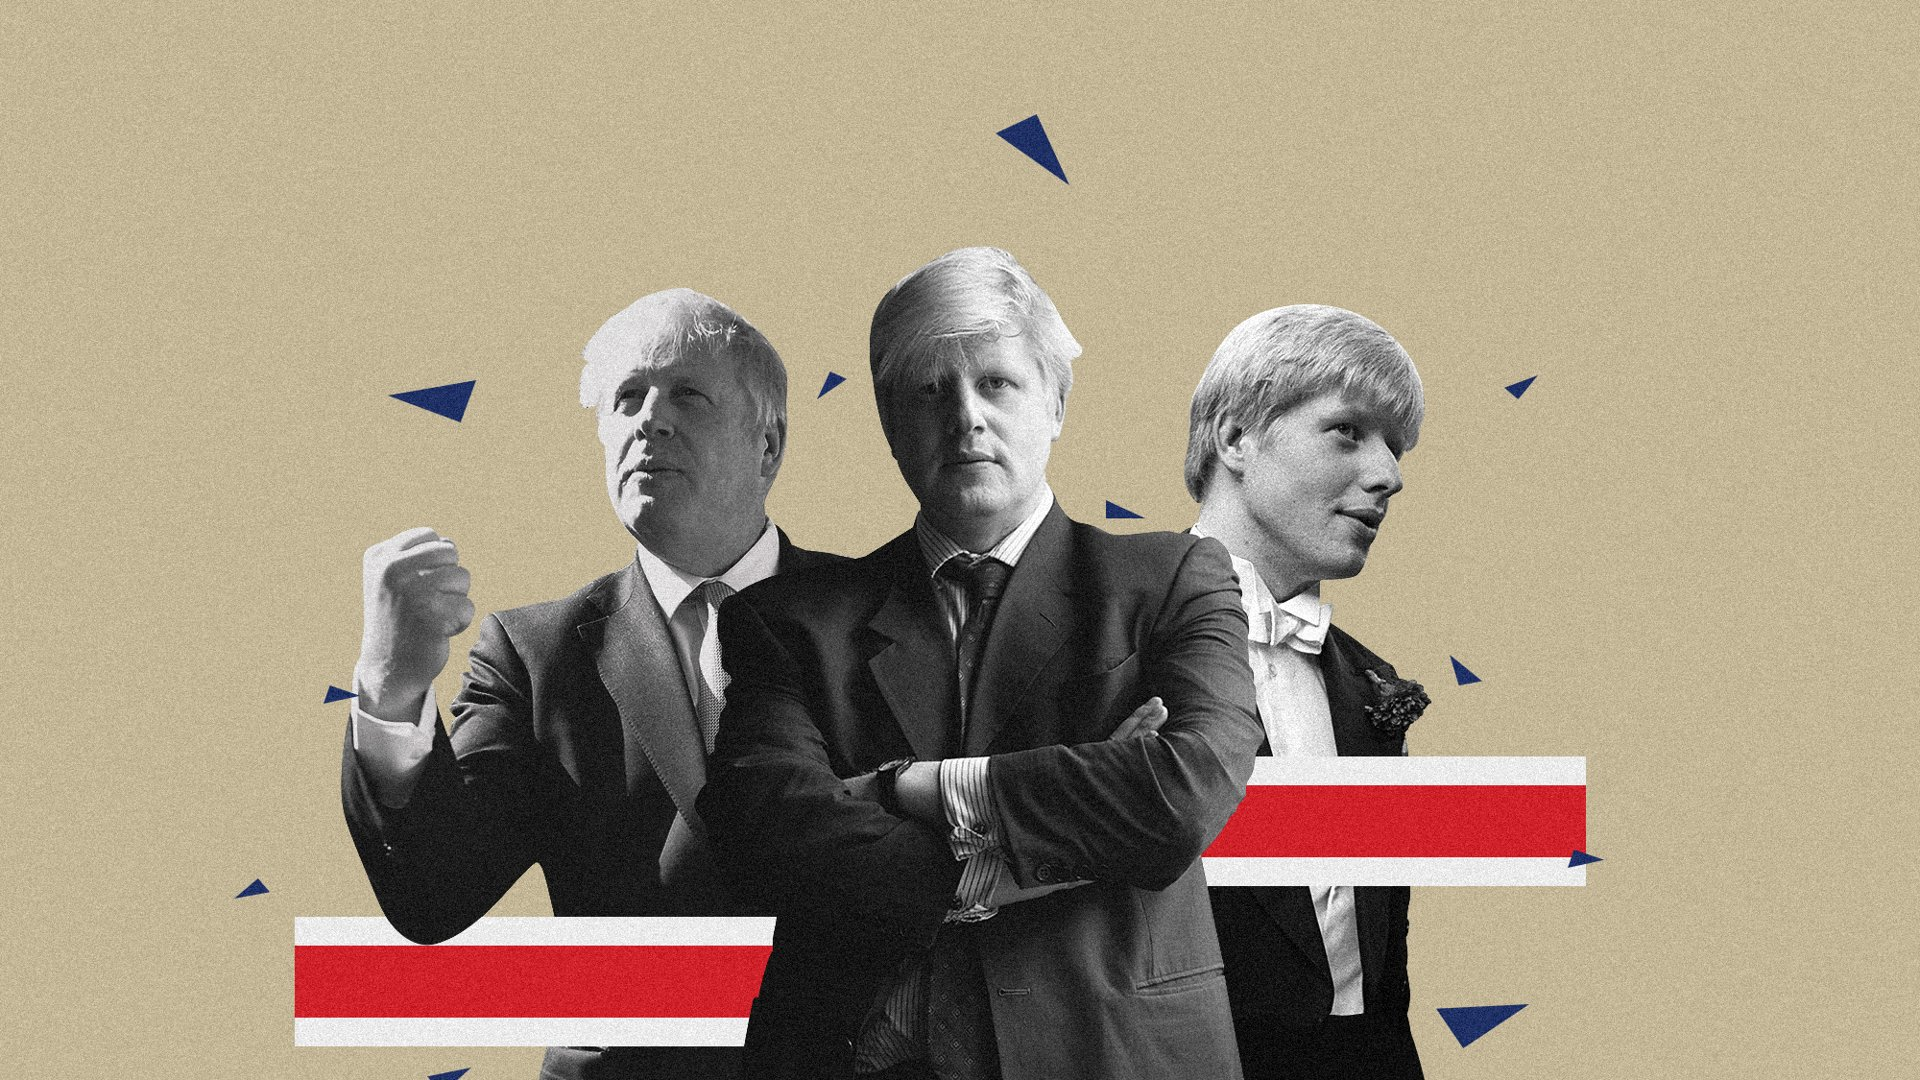 Is Boris Johnson Ready to be Britain's Prime Minister? - The ...